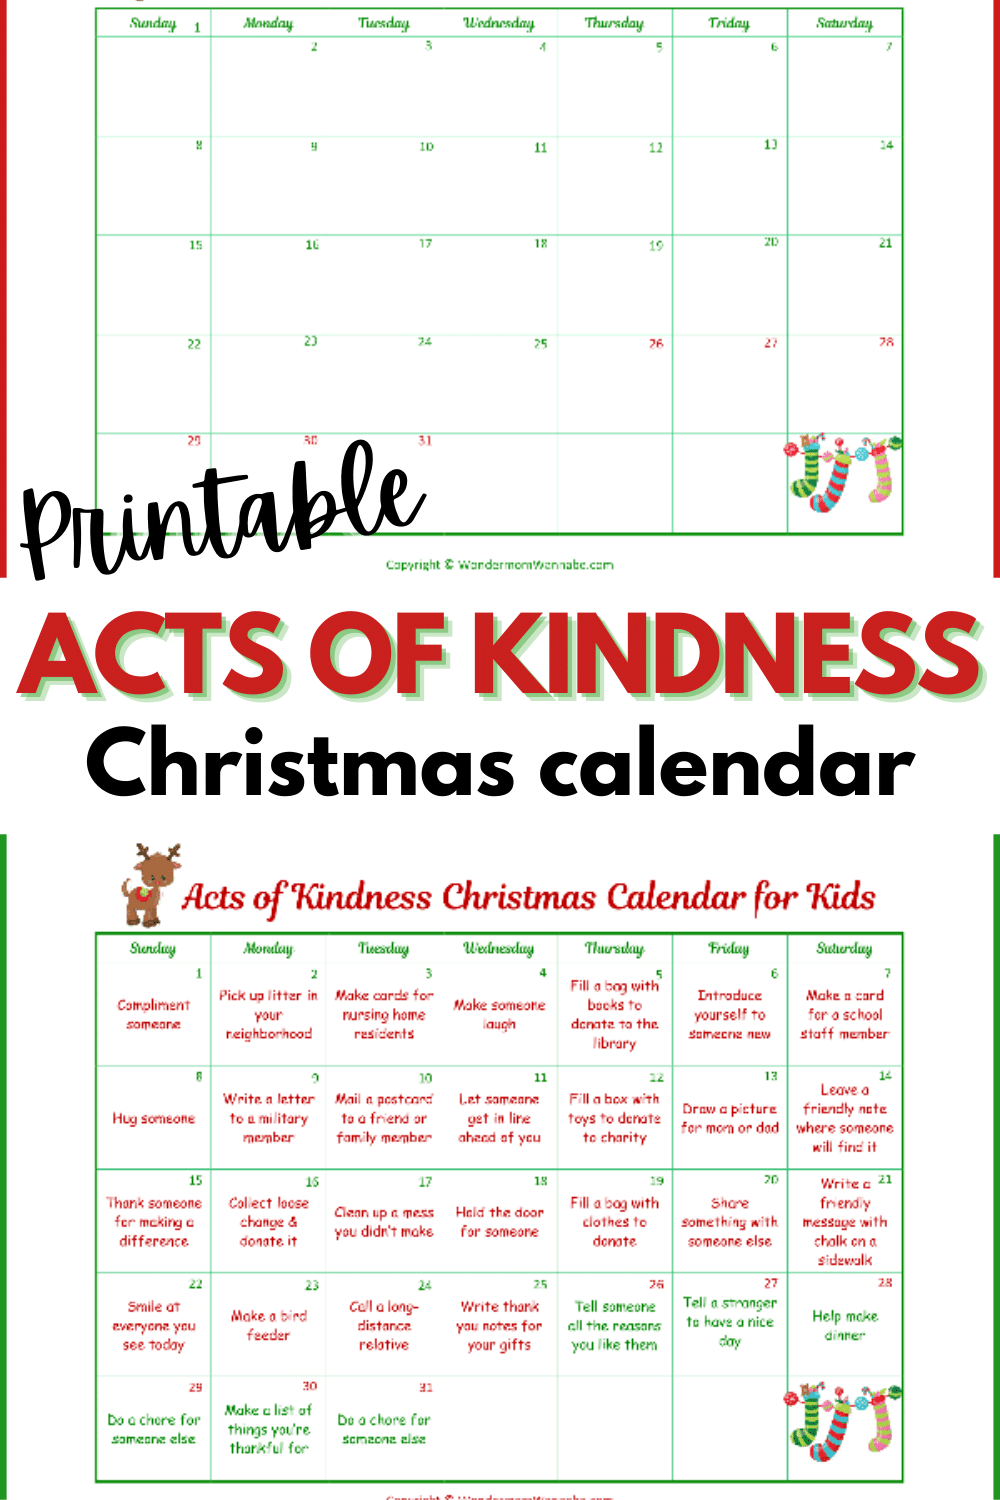 This random acts of kindness Christmas calendar is designed just for kids! What a great way to show kids that you're never too young to make a positive impact. #printables #RAKprintables #Christmasprintables #Kidsprintables #Randomactsofkindness via @wondermomwannab